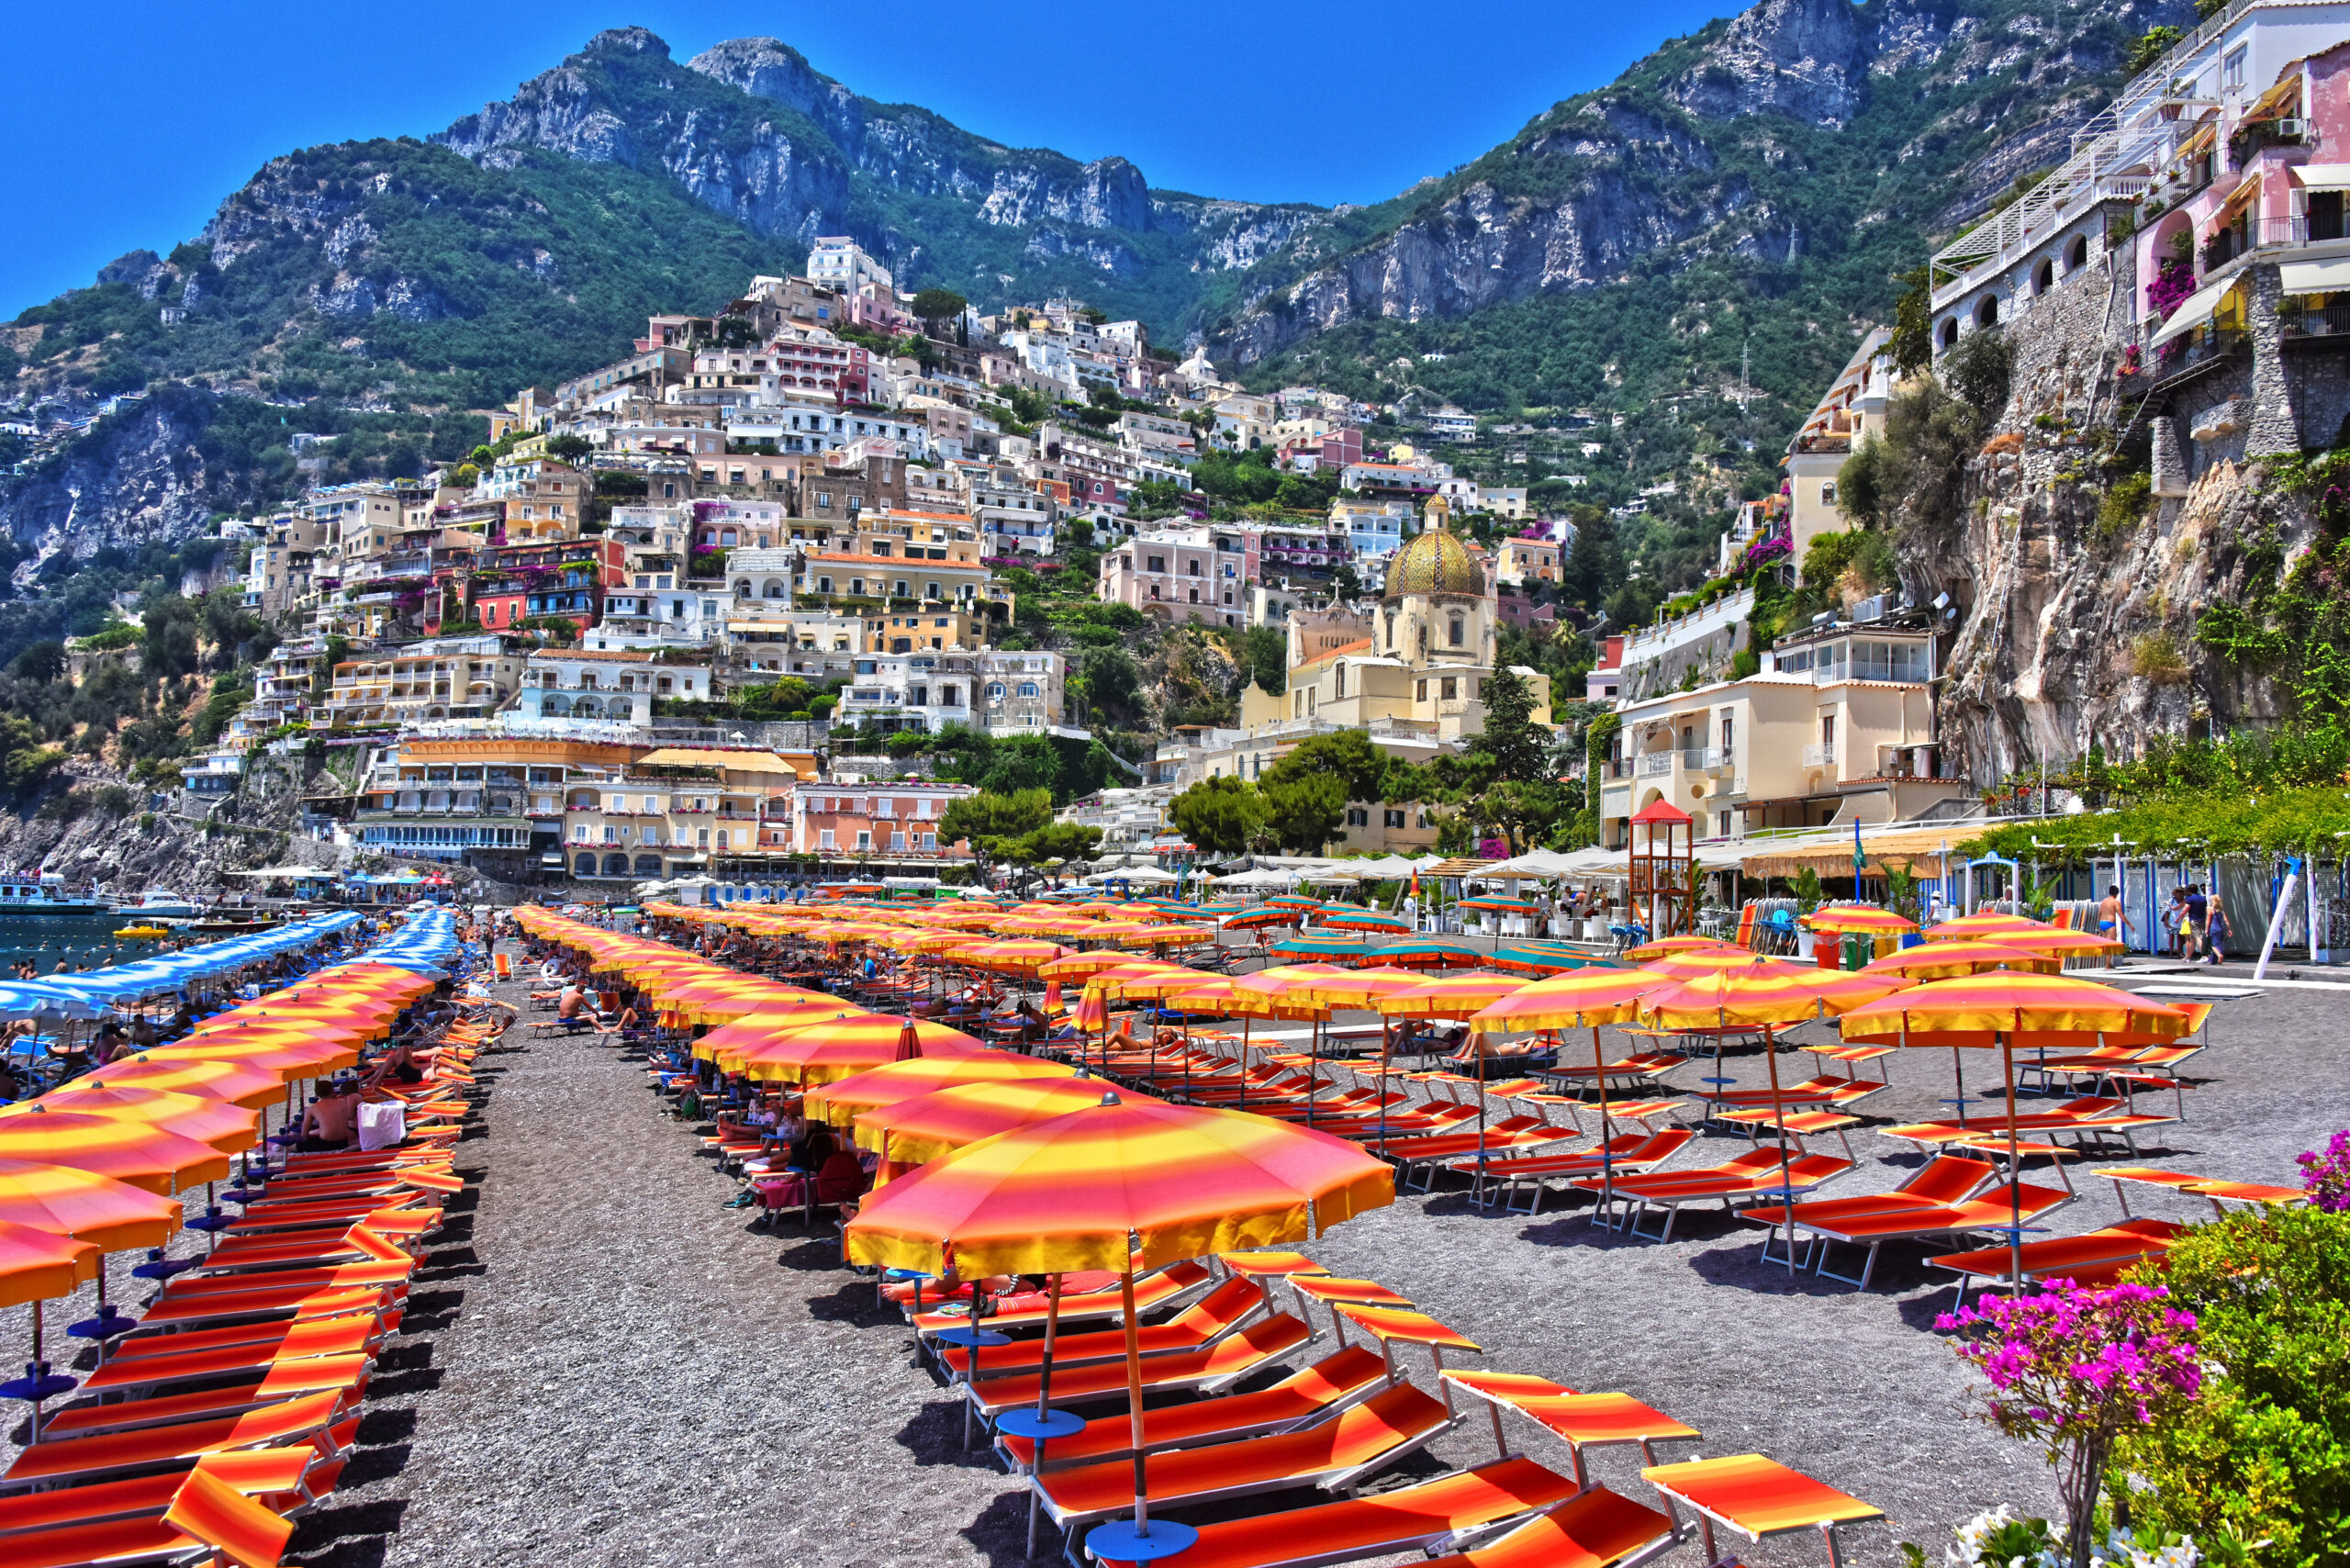 Photo of Marina Grande of Positano on the Amalfi Coast. Orange, yellow, and pink umbrellas are in the forefront with rocky cliffs in the background.